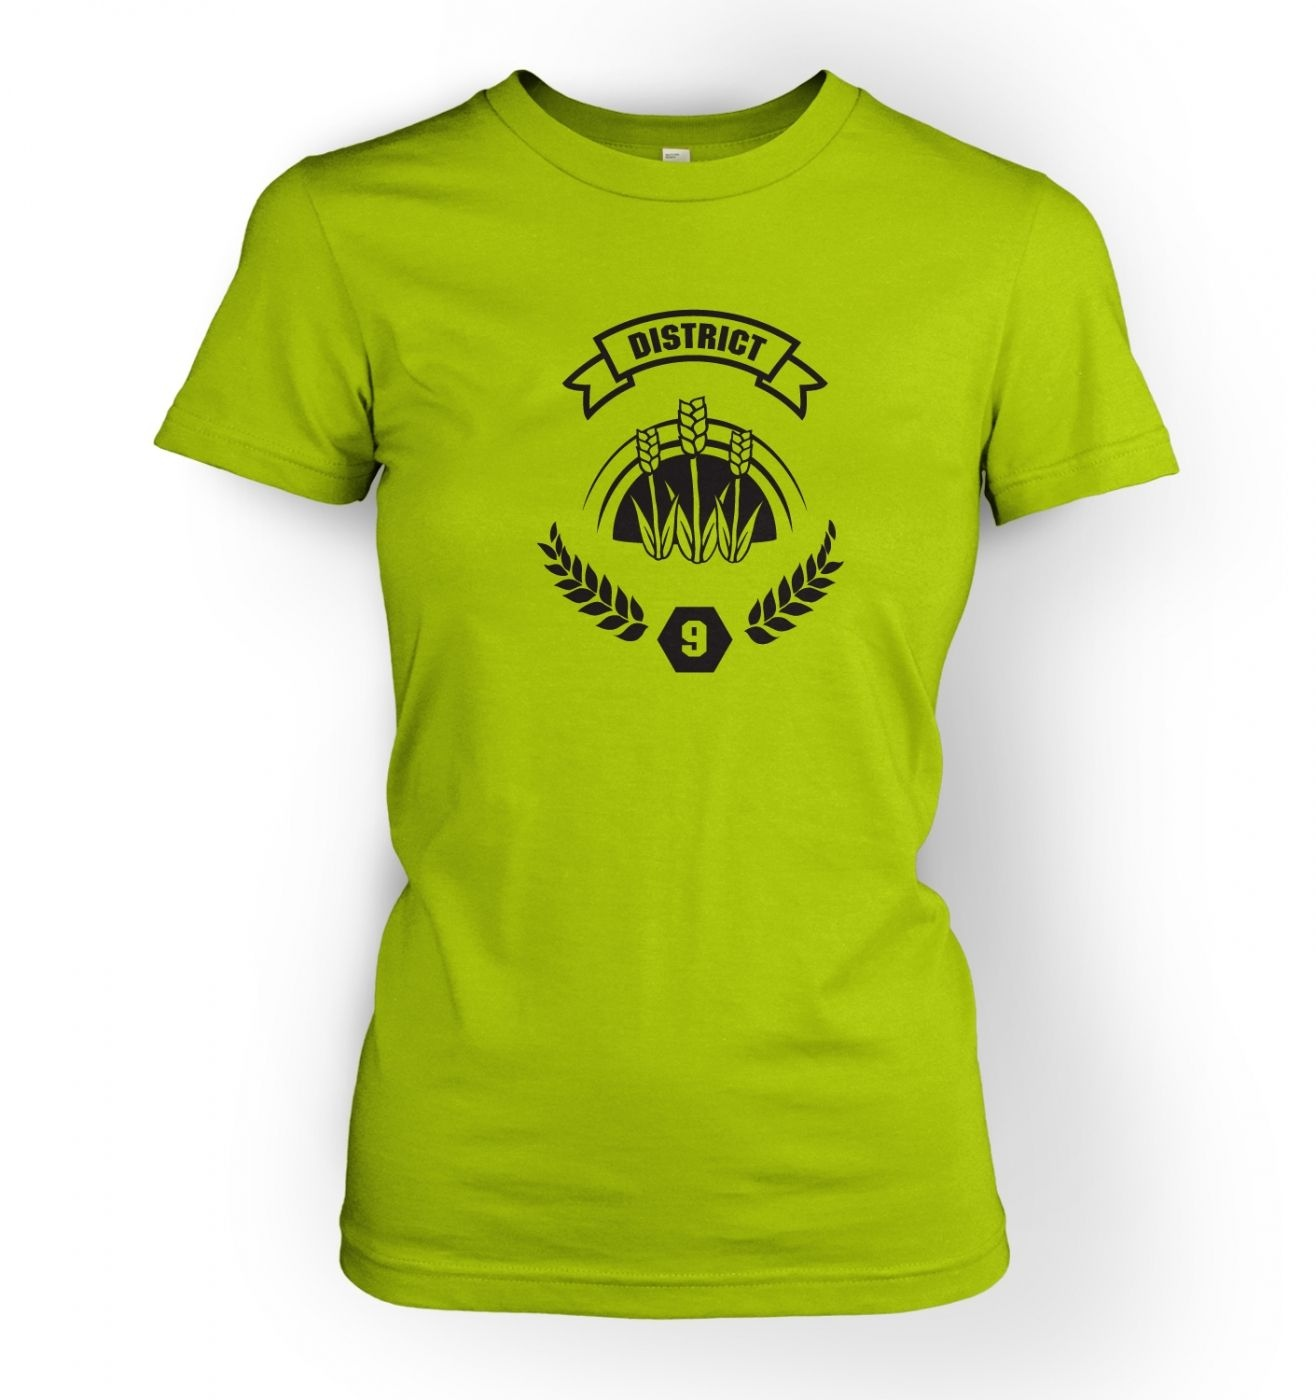 Women's District 9 t-shirt - Inspired by The Hunger Games